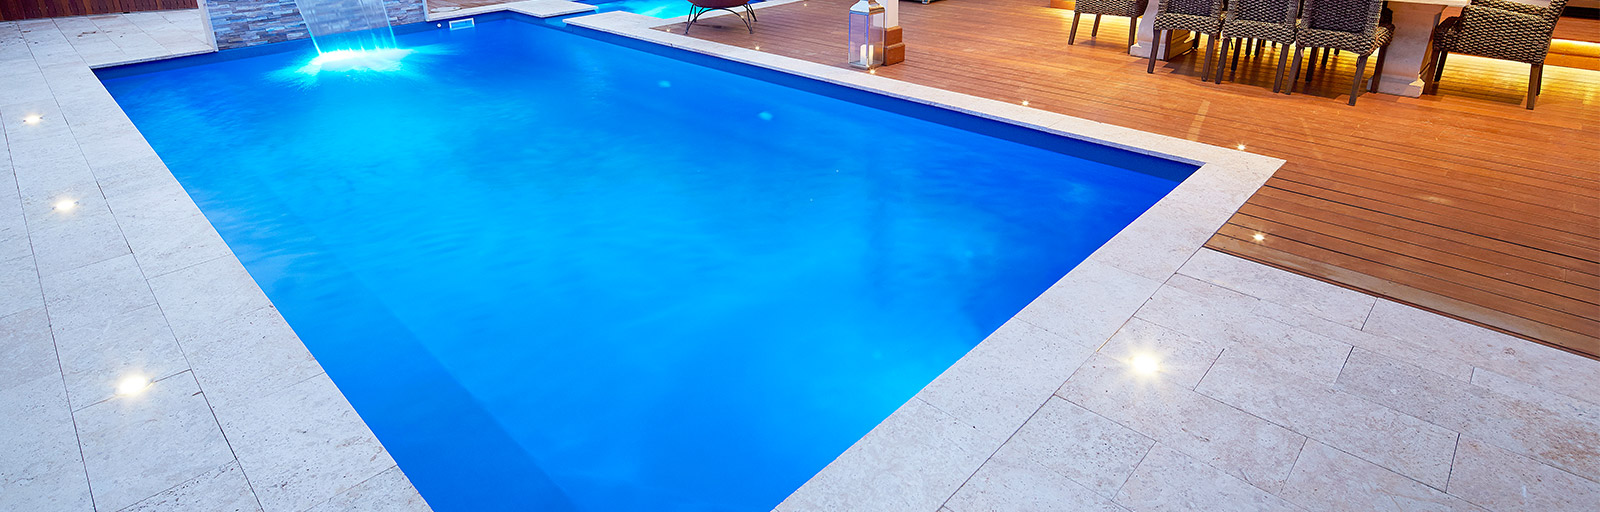 Fibreglass Swimming Pools NZ| Aqua Technics Auckland